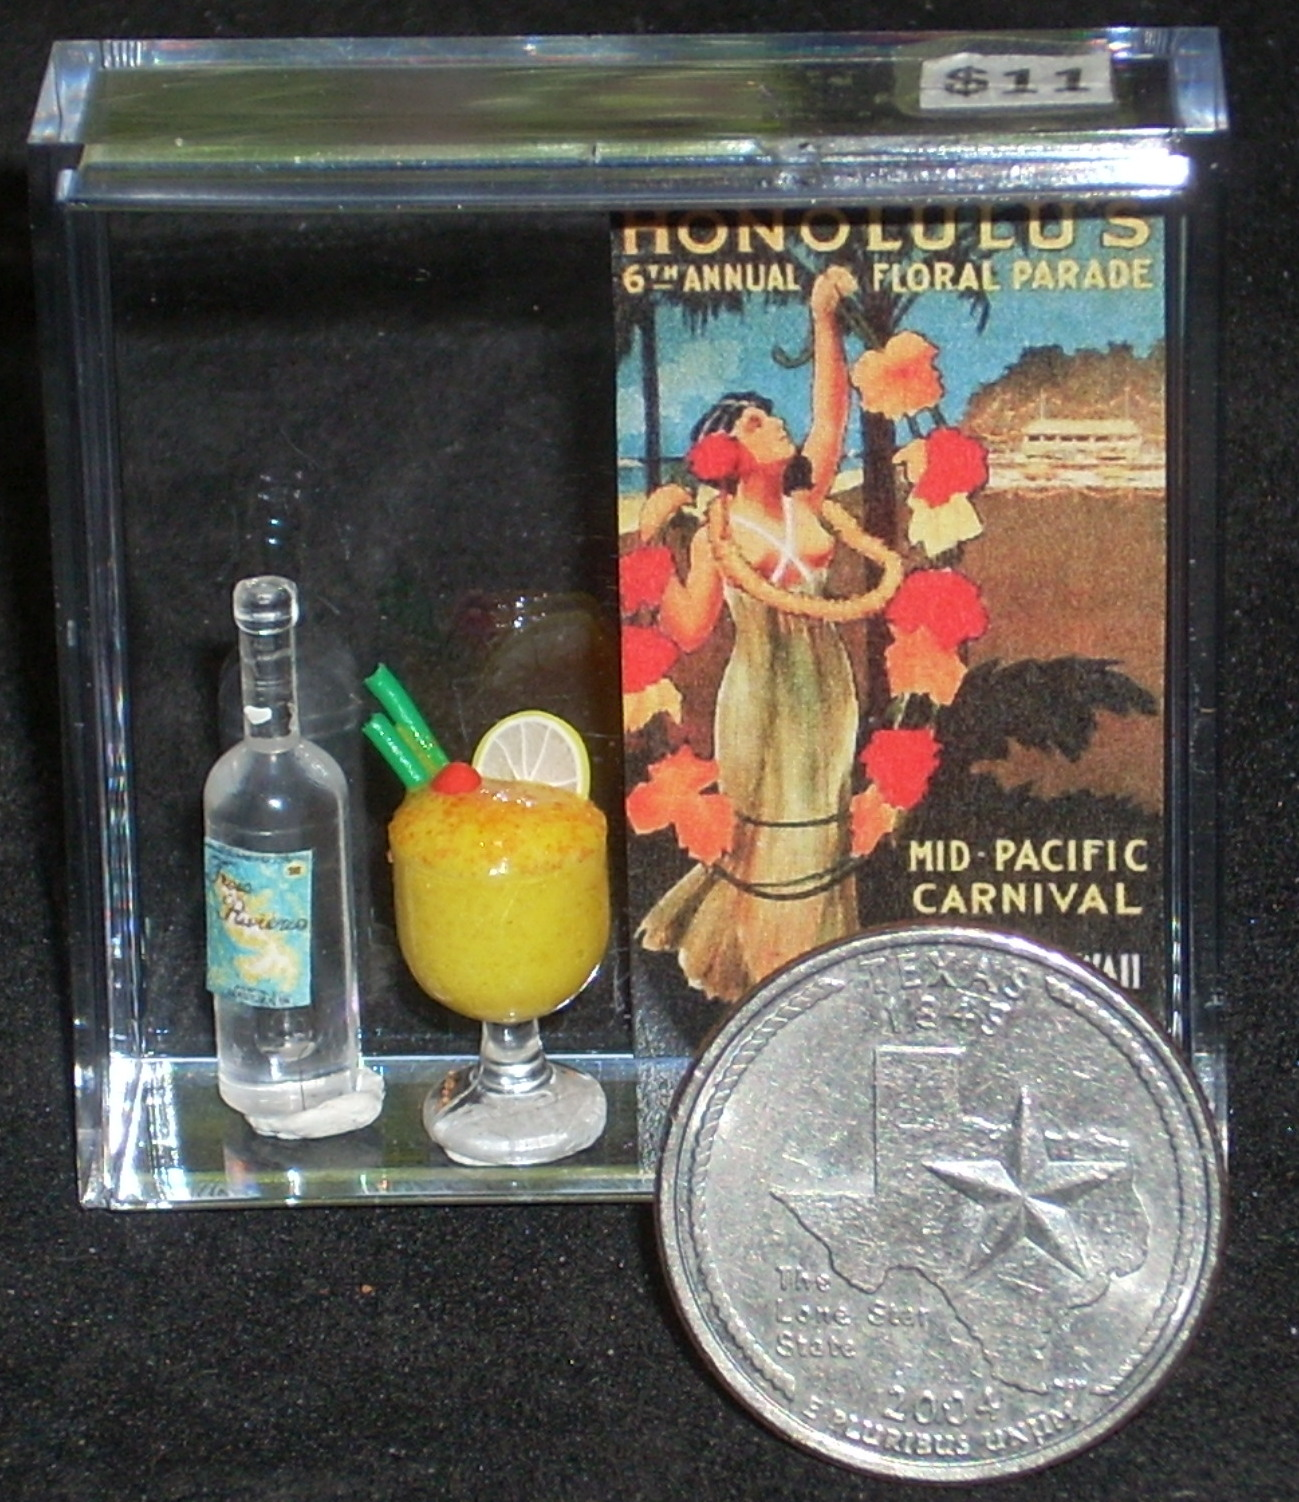 Luau Poster Alcohol Bottle & Drink 1:12 Miniature Hawaii 8108